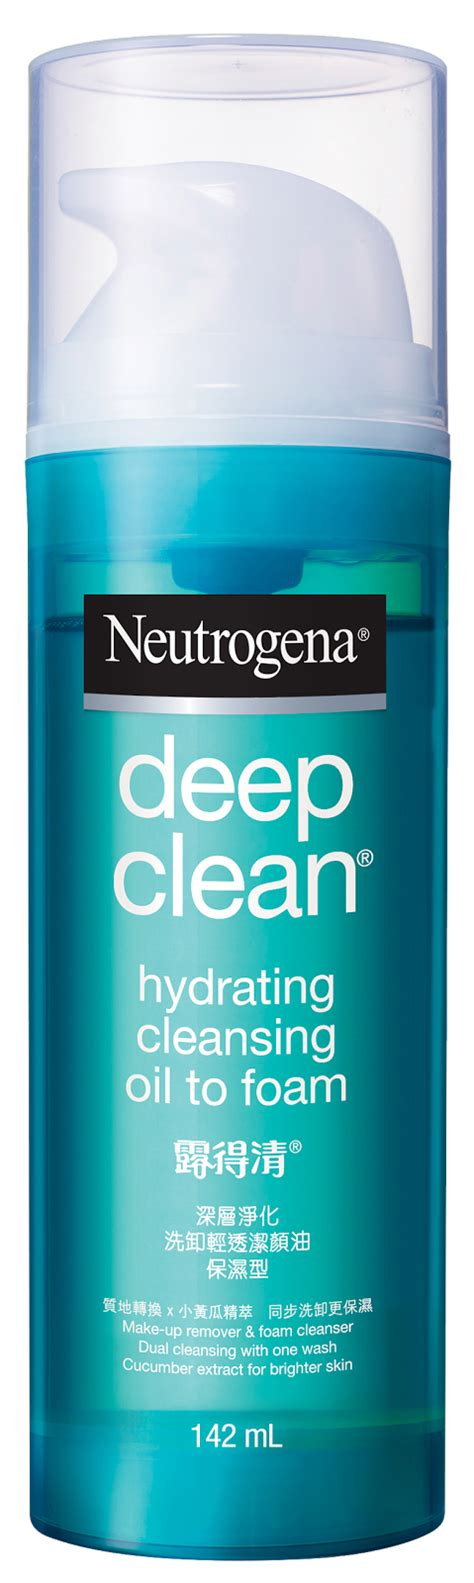 Detox Activation Cleansing Formula by Memoirs Cross My Neutrogena 174 Clean